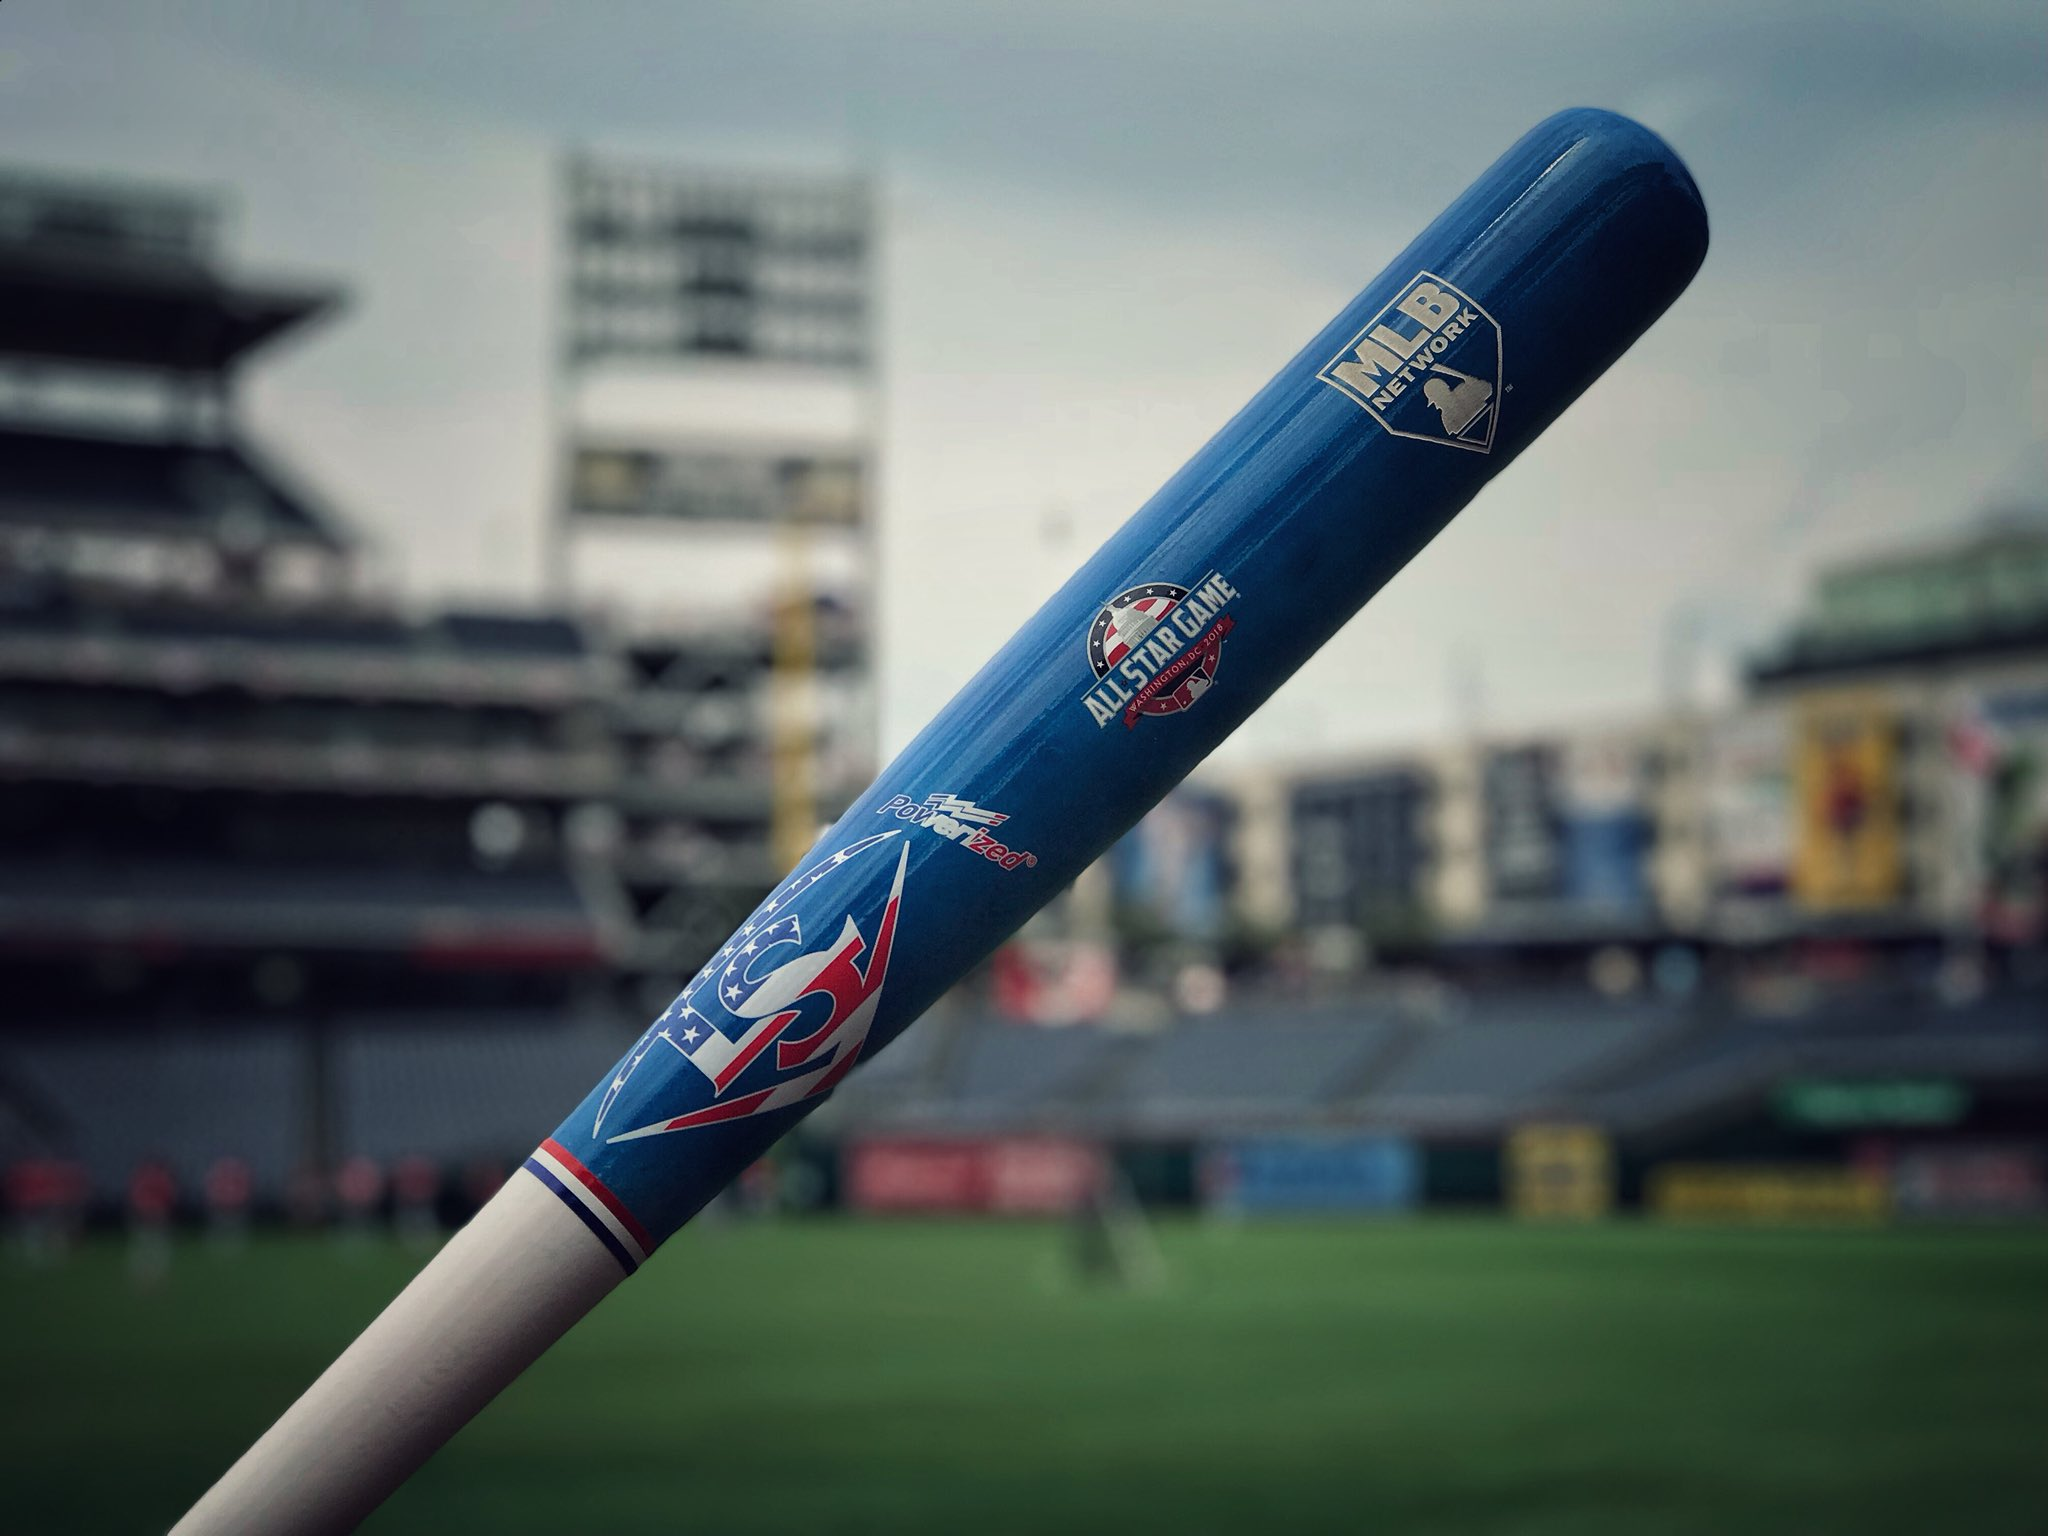 RETWEET for a chance at a @sluggernation #AllStarGame bat and tune in to the #MLBTonight postgame show now! https://t.co/JB2SyU3wXG